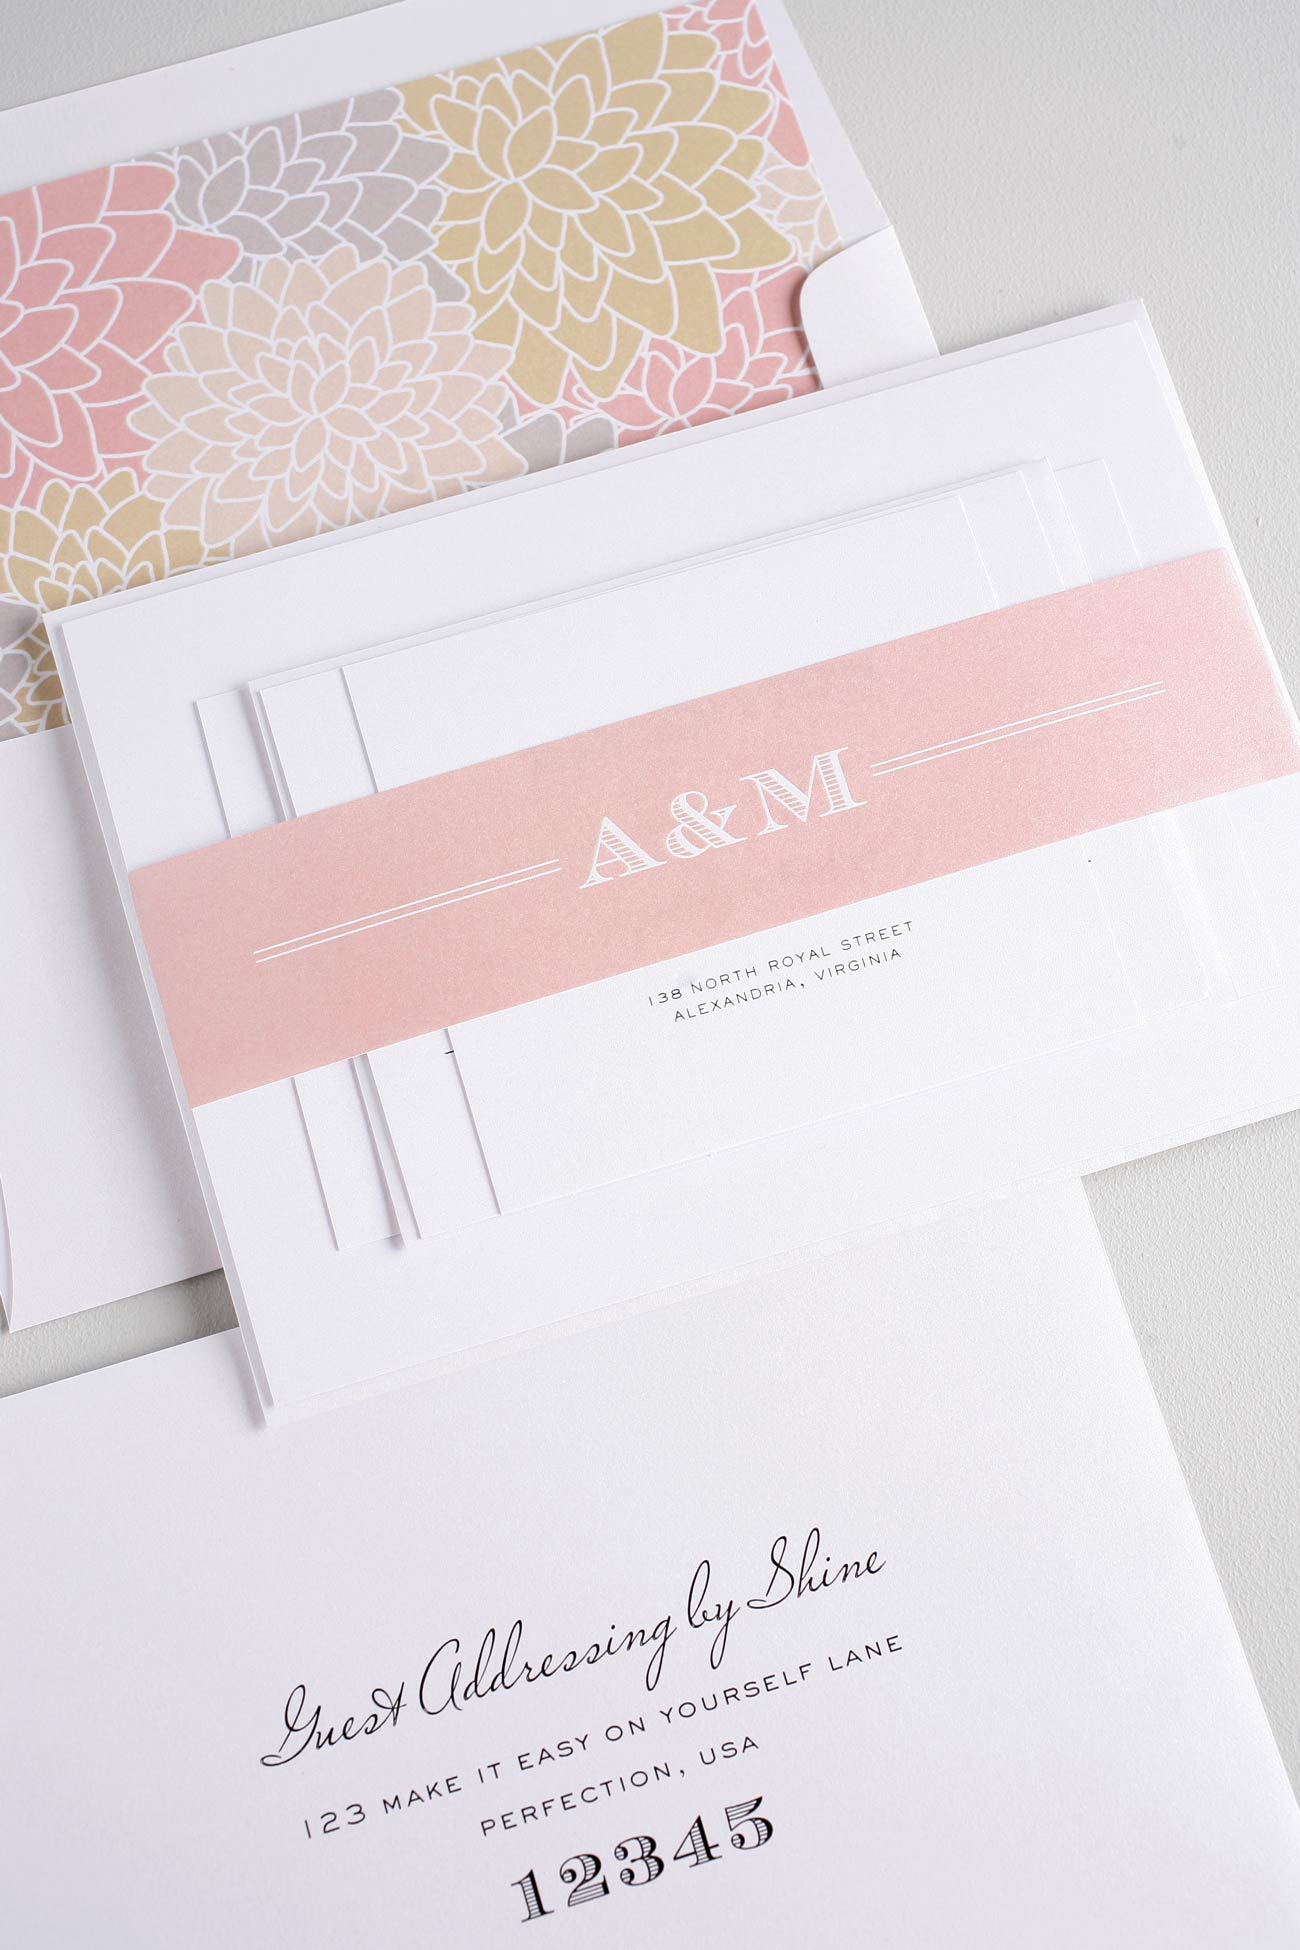 Floral wedding invitations in neutral palette